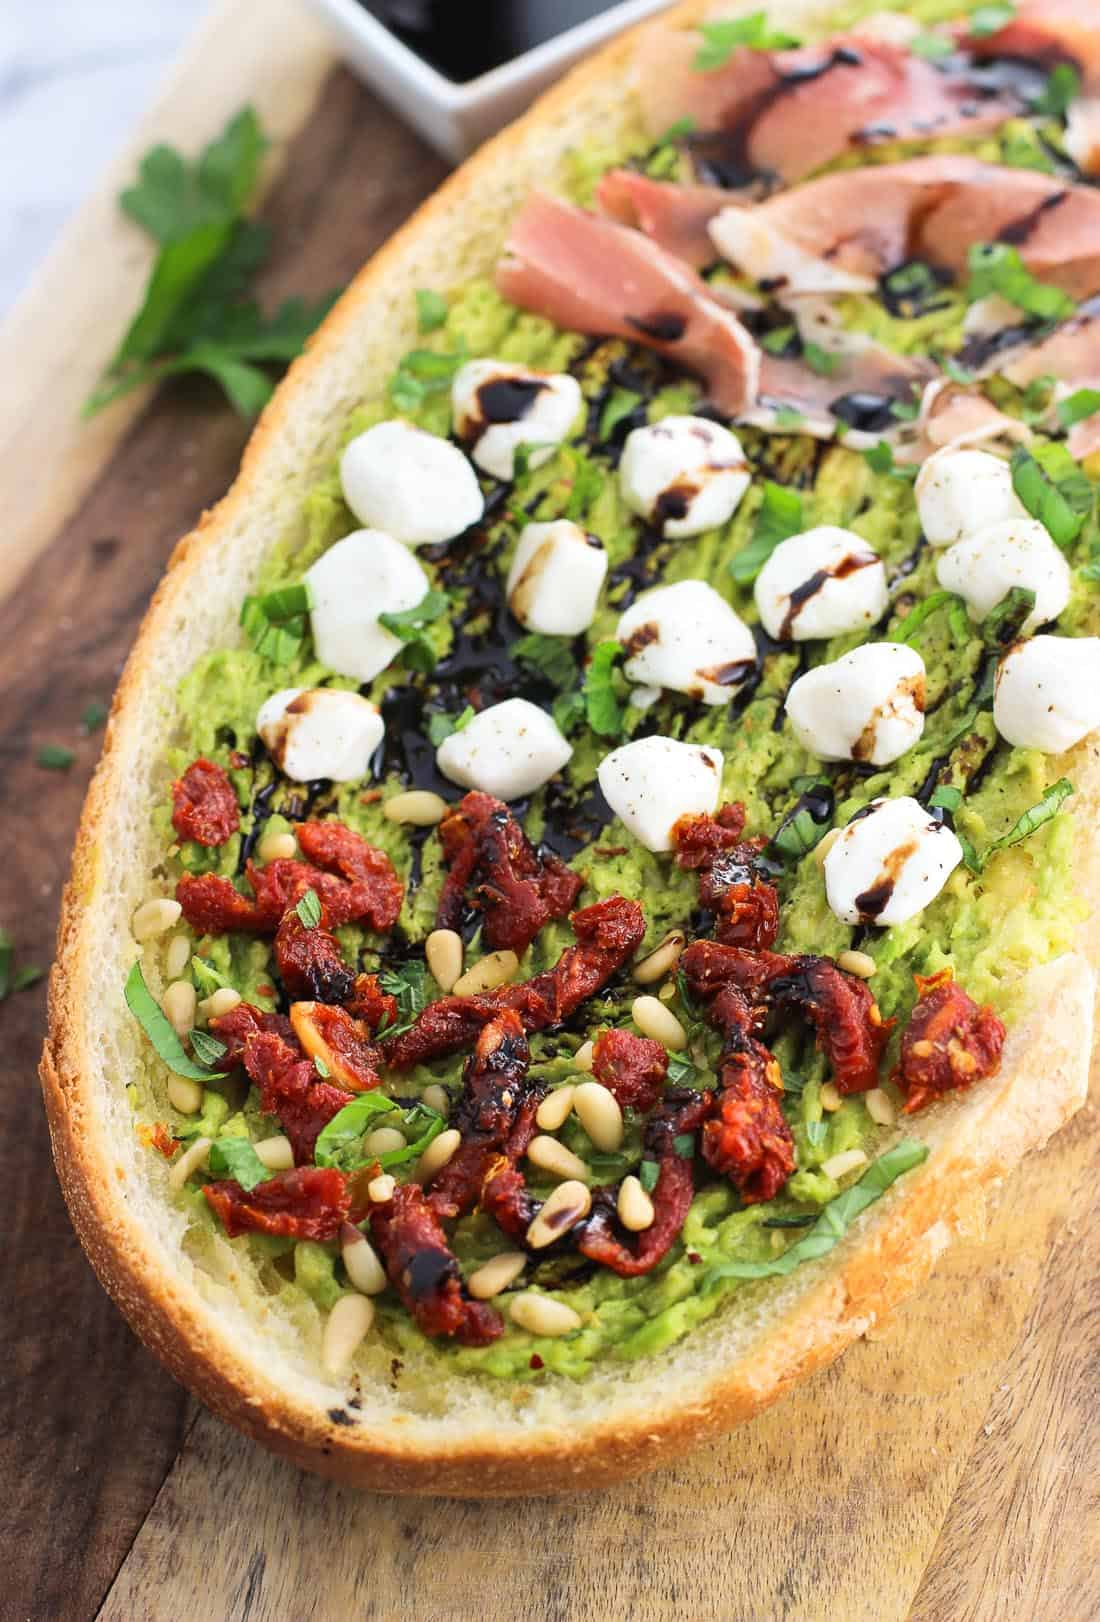 A slab of avocado garlic bread with various toppings.